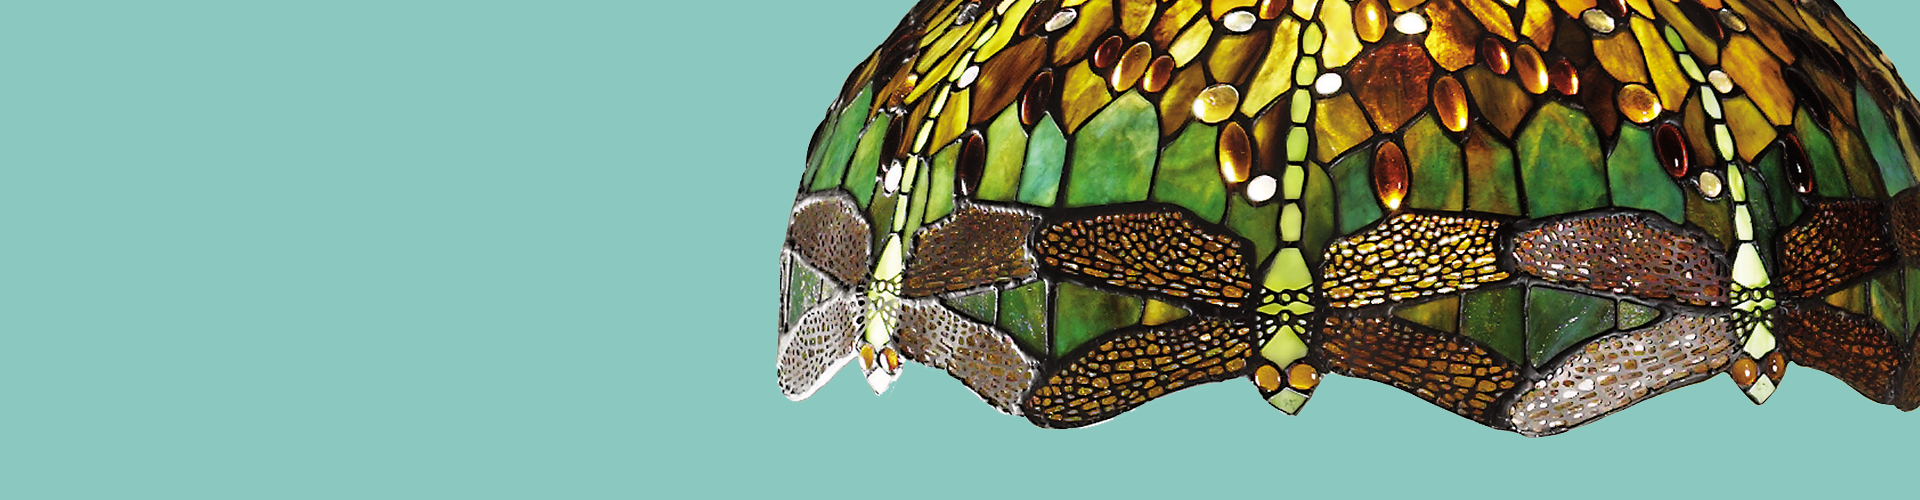 Dragonfly green_Range_Header_Banners_size